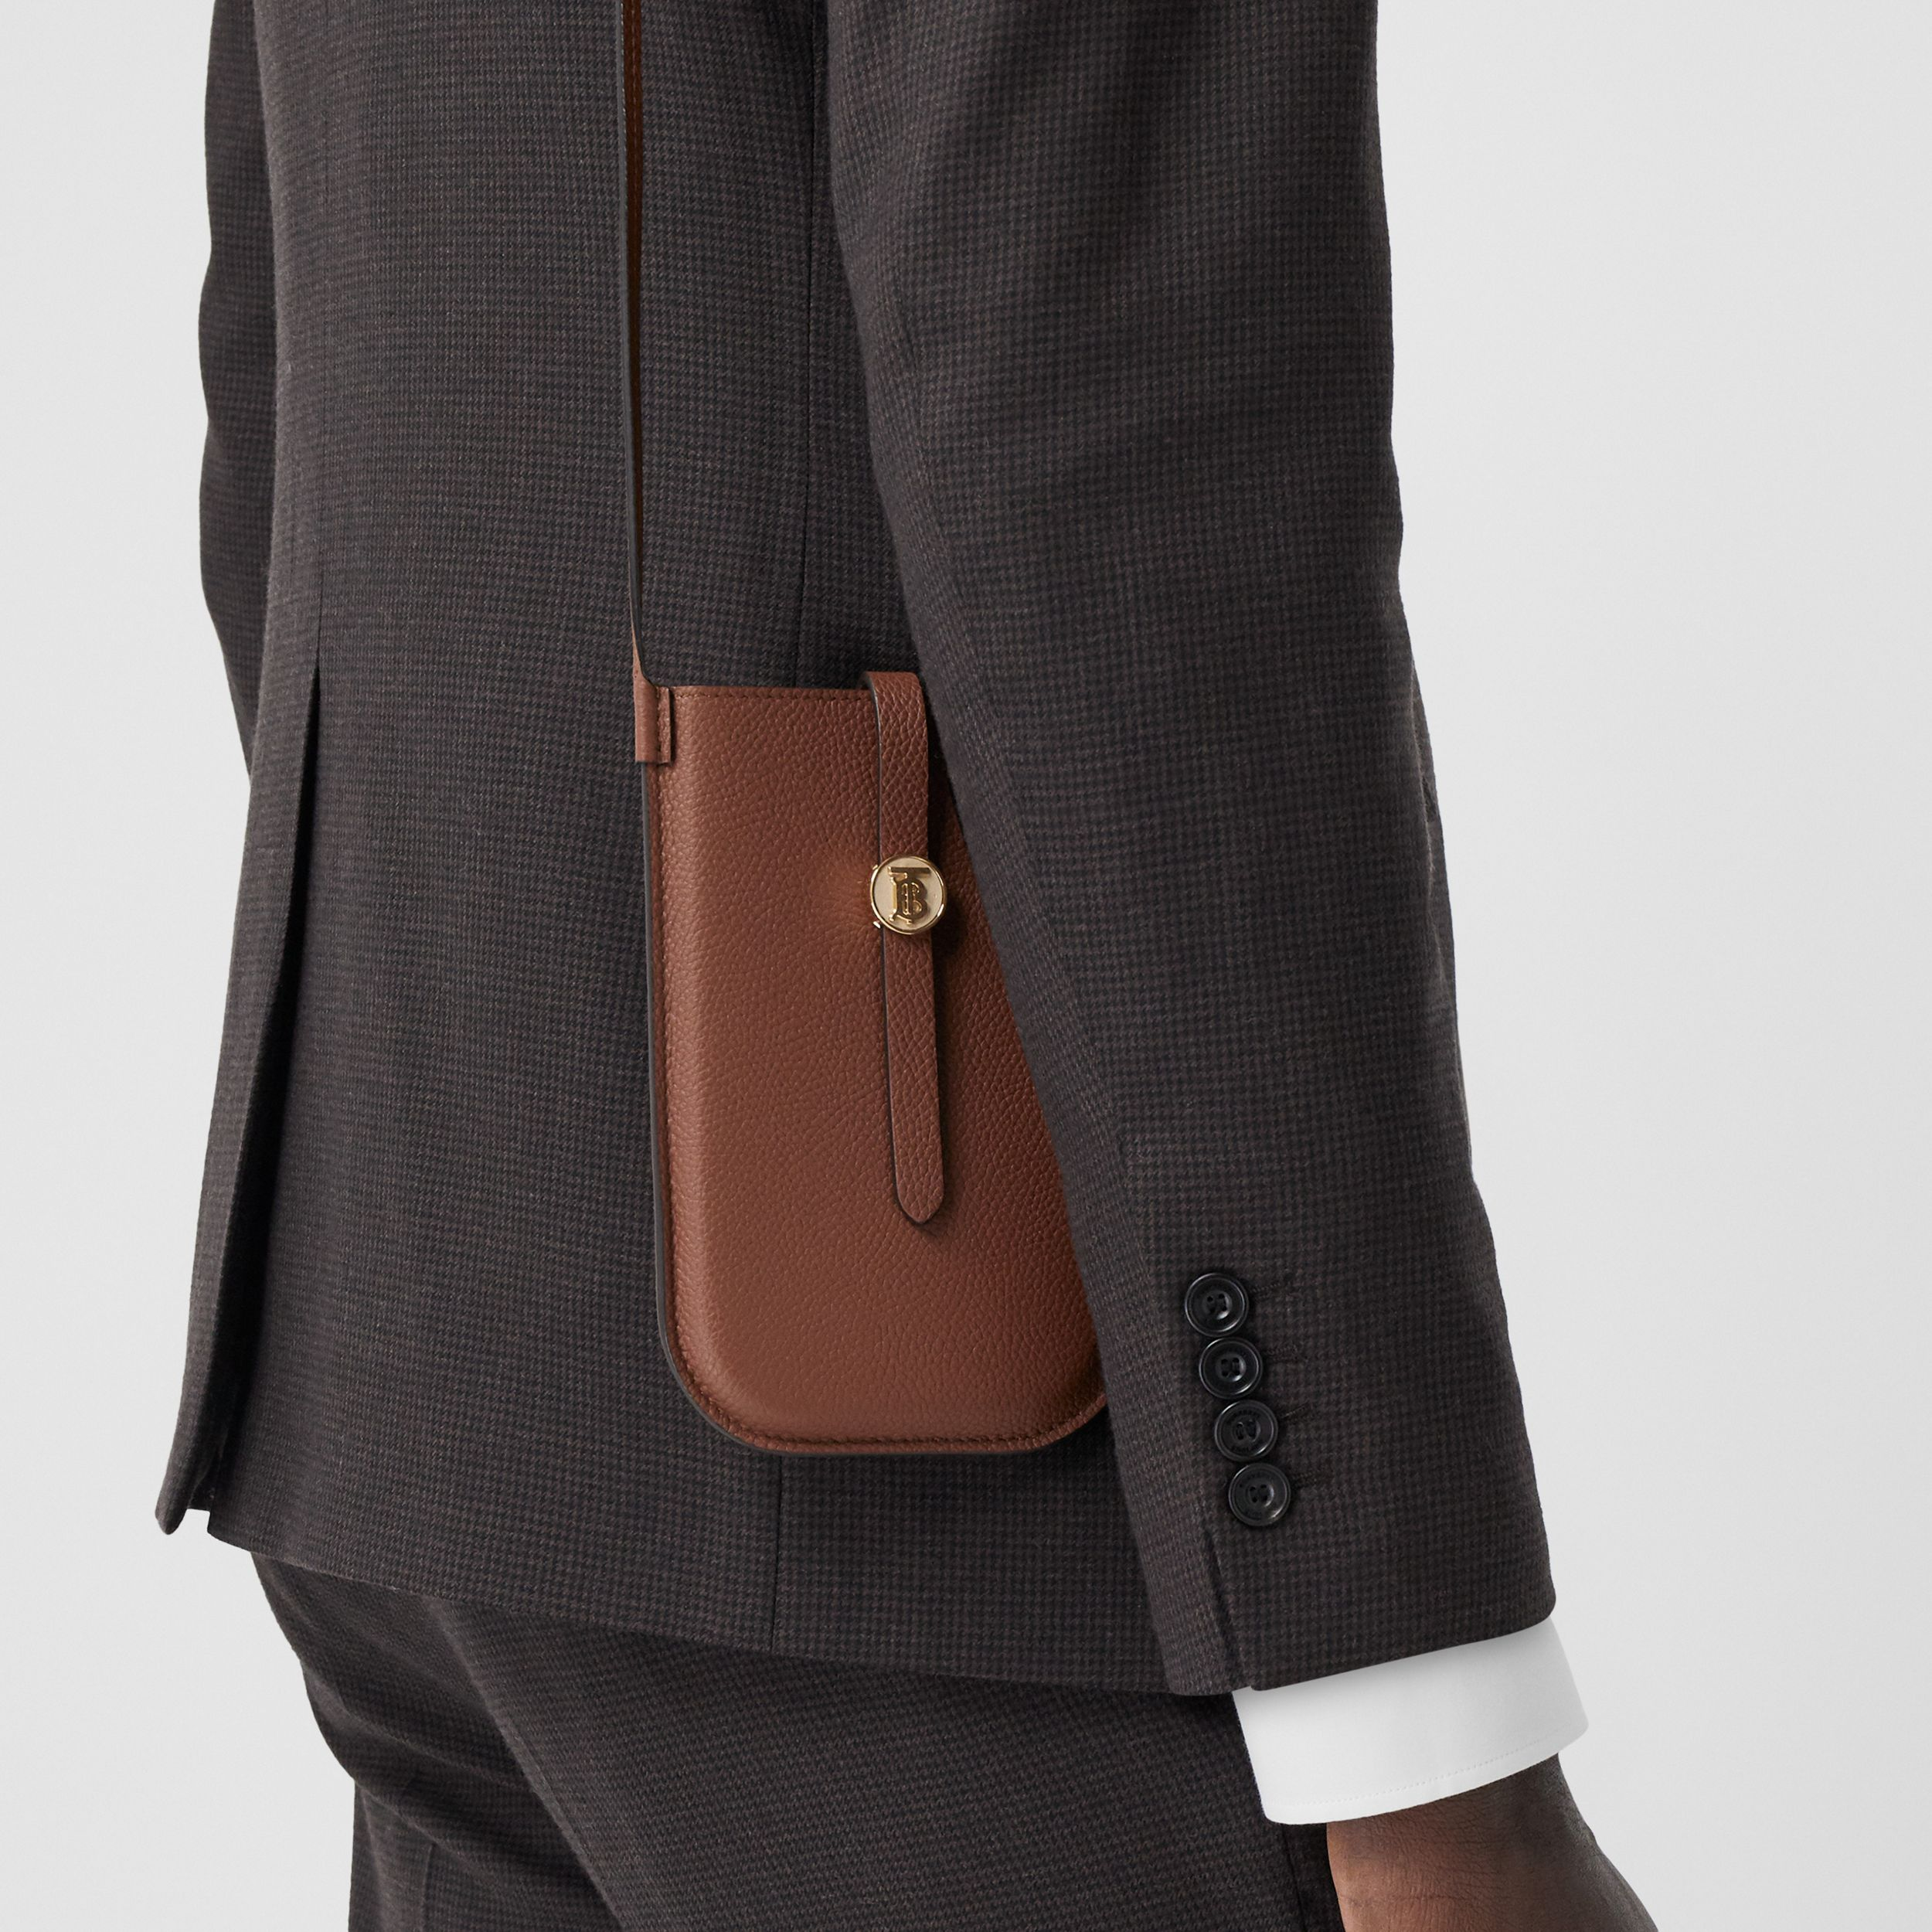 Leather Phone Case with Strap in Tan | Burberry - 4